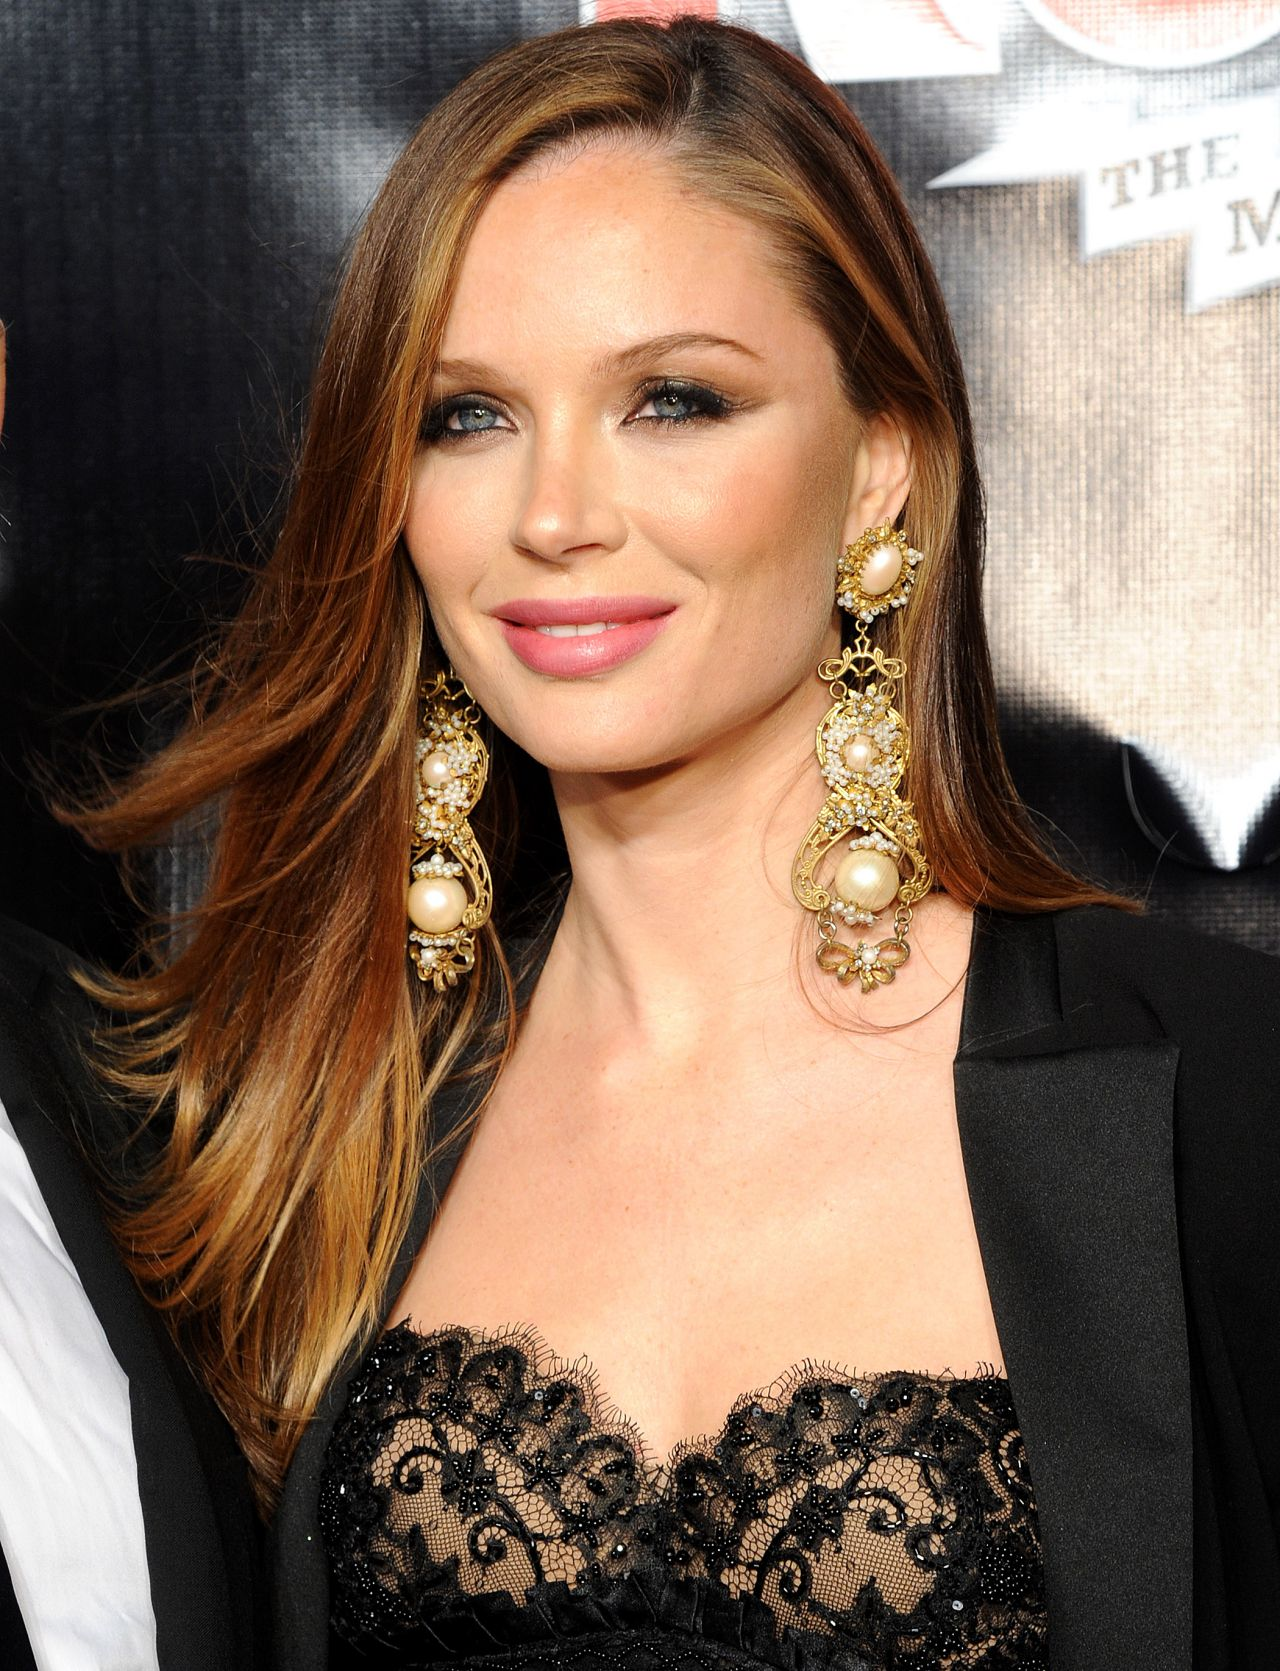 Georgina Chapman Latest Photos Celebmafia